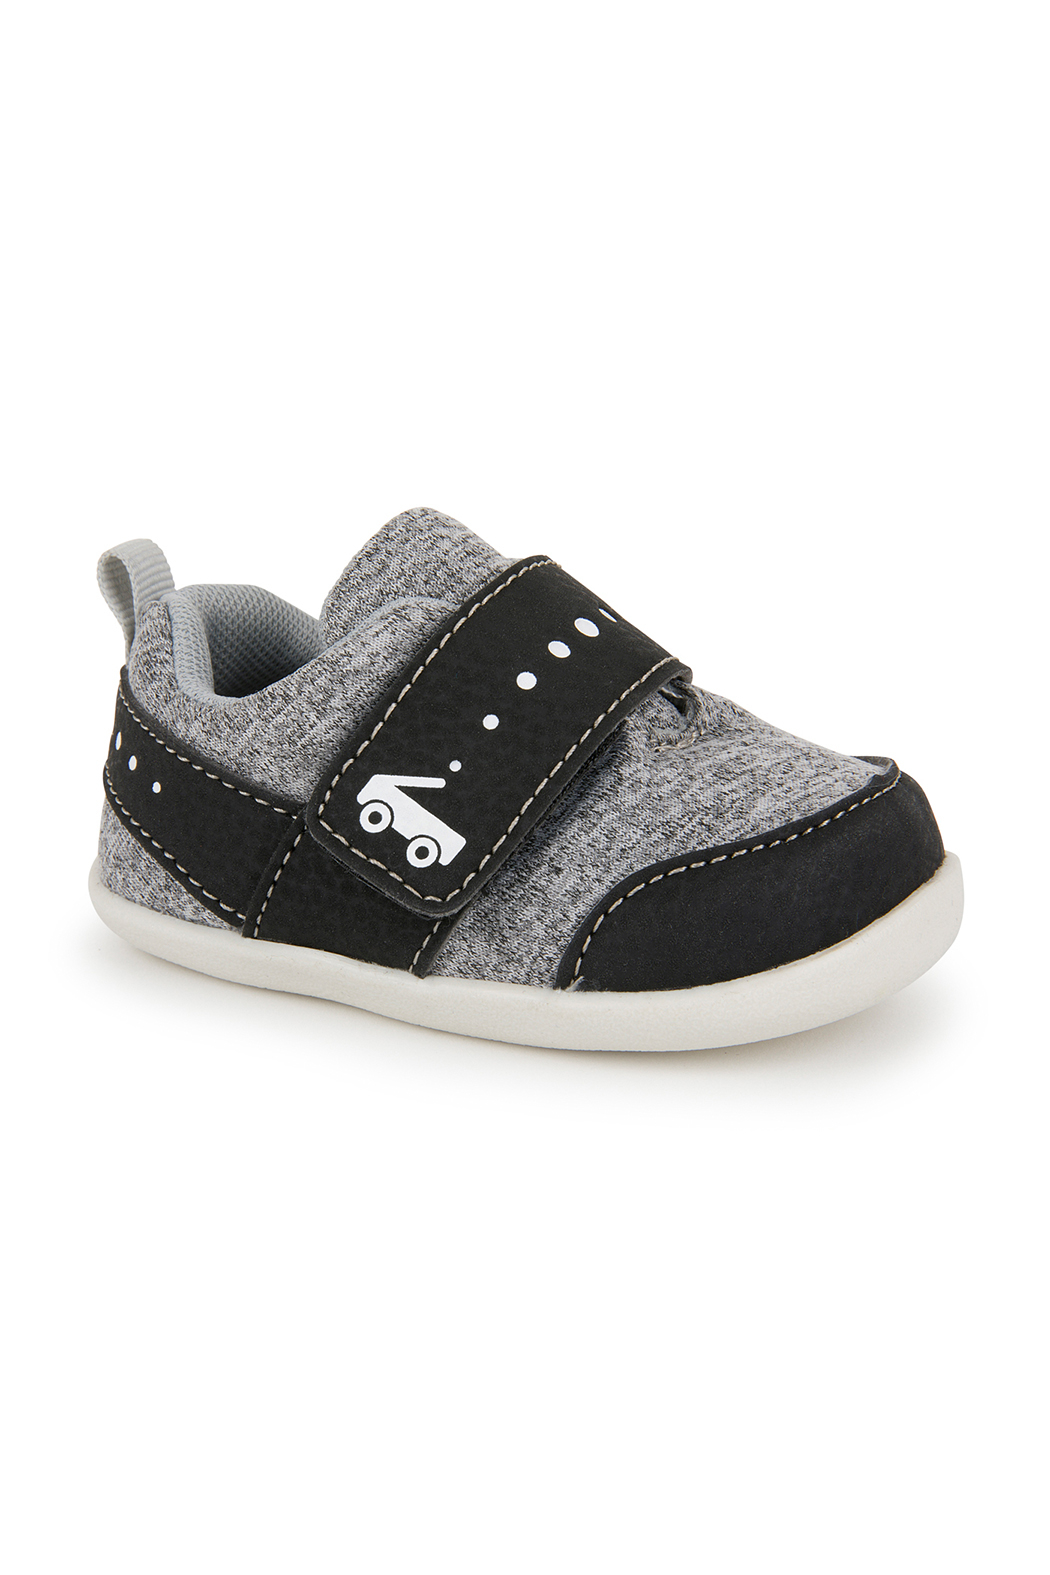 See Kai Run Ryder Infant Black - Front Cropped Image